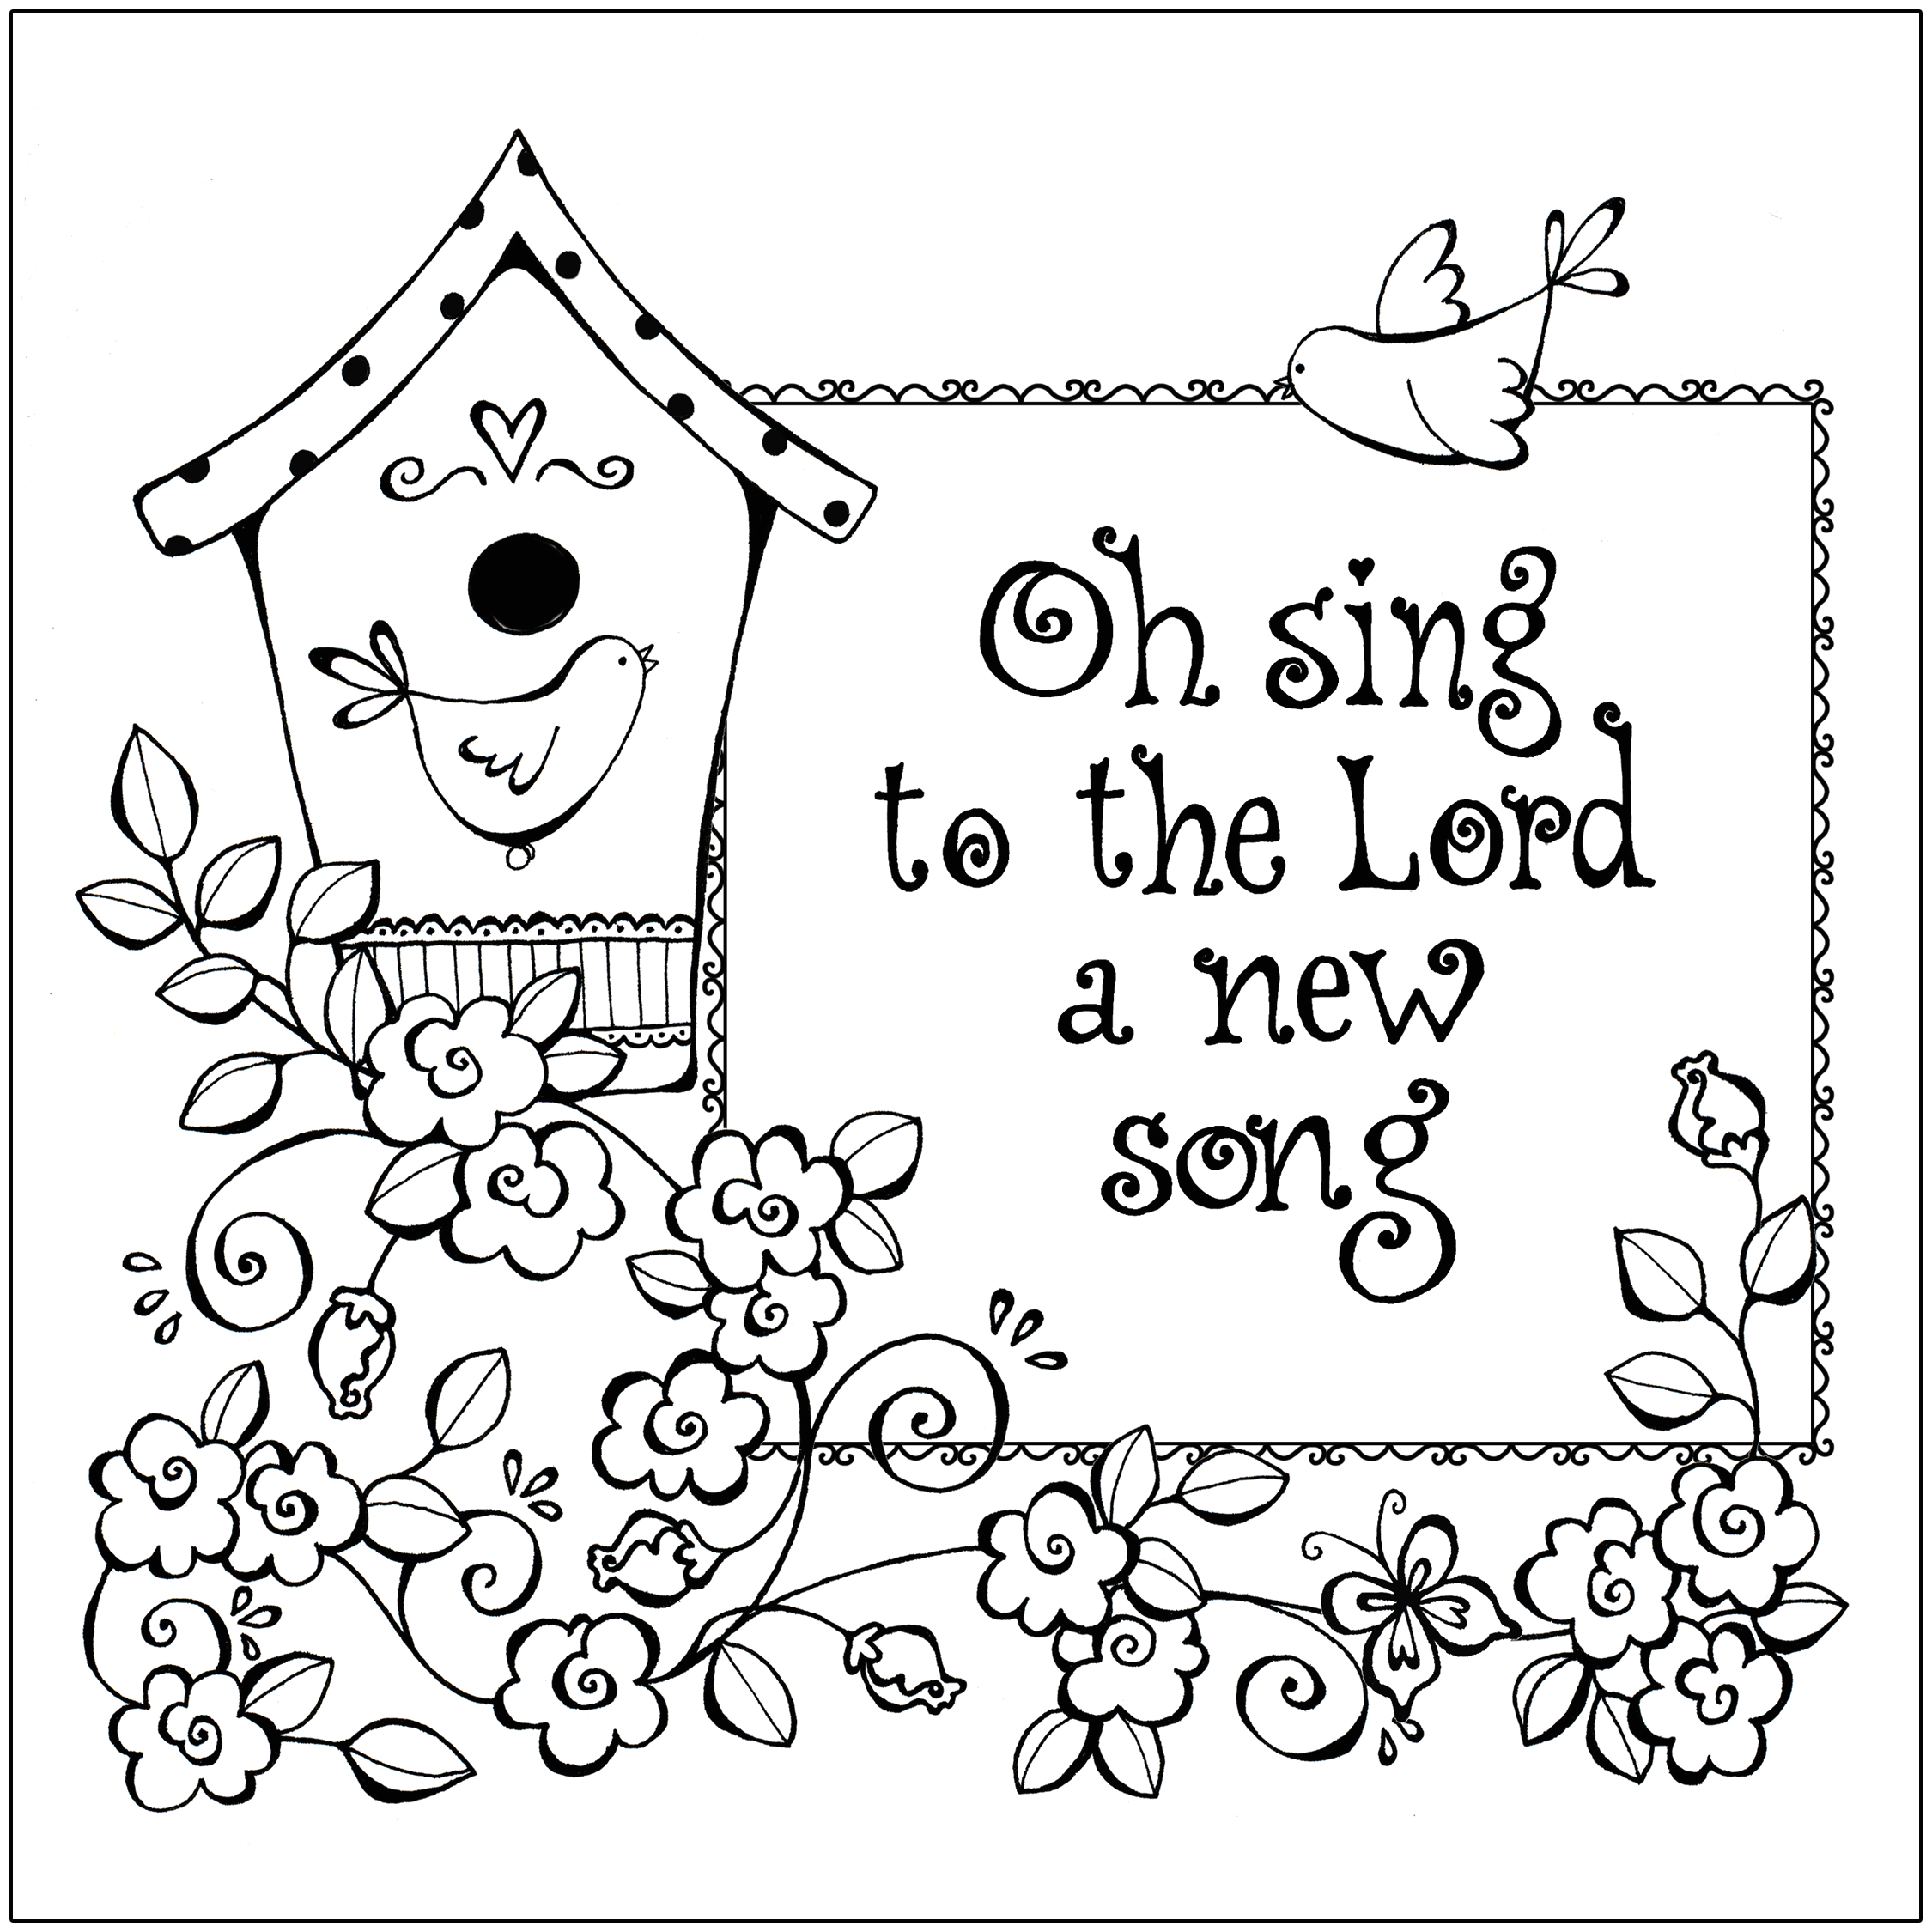 Free Printable Christian Coloring Pages for Preschoolers Free Printable Christian Coloring Pages for Kids Best